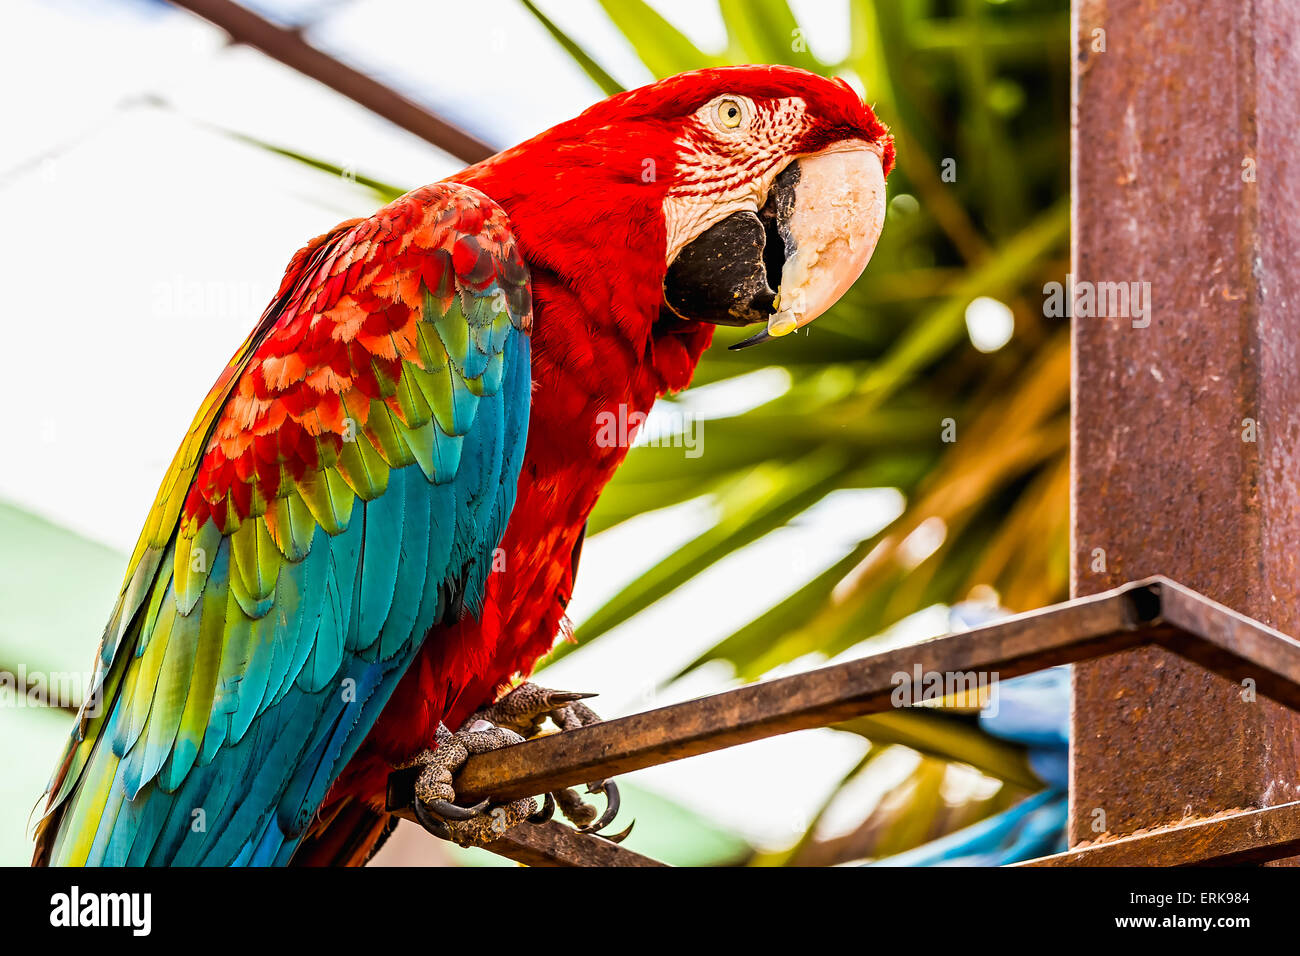 Red Macaw or Ara cockatoos parrot siting on metal perch in zoo - Stock Image